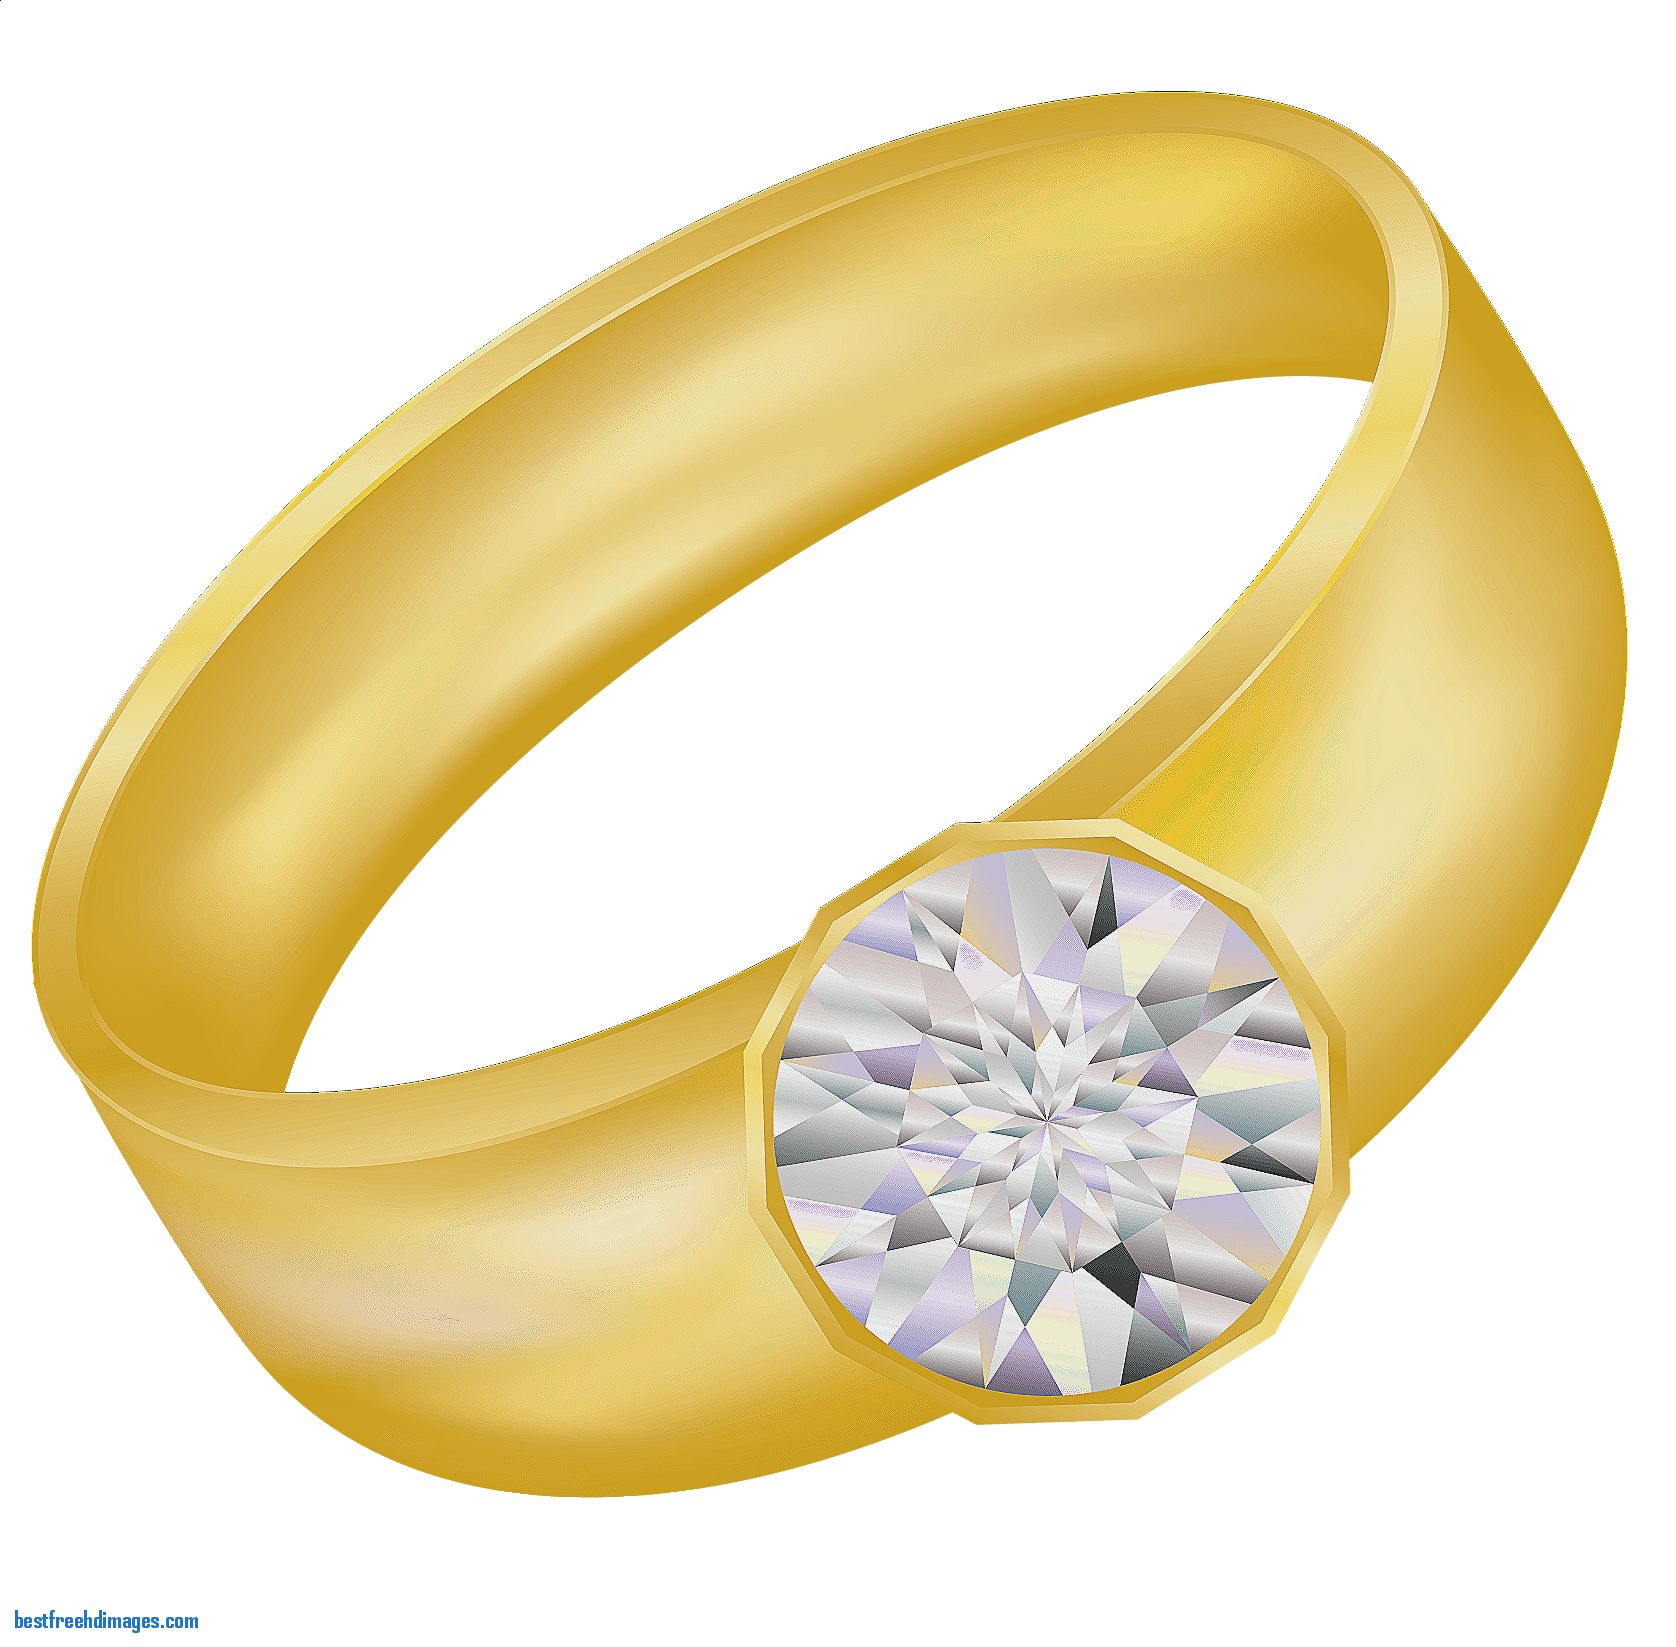 Wedding rings heart clipart picture library download Colorful Cartoon Wedding Ring Pictures - The Wedding Ideas ... picture library download